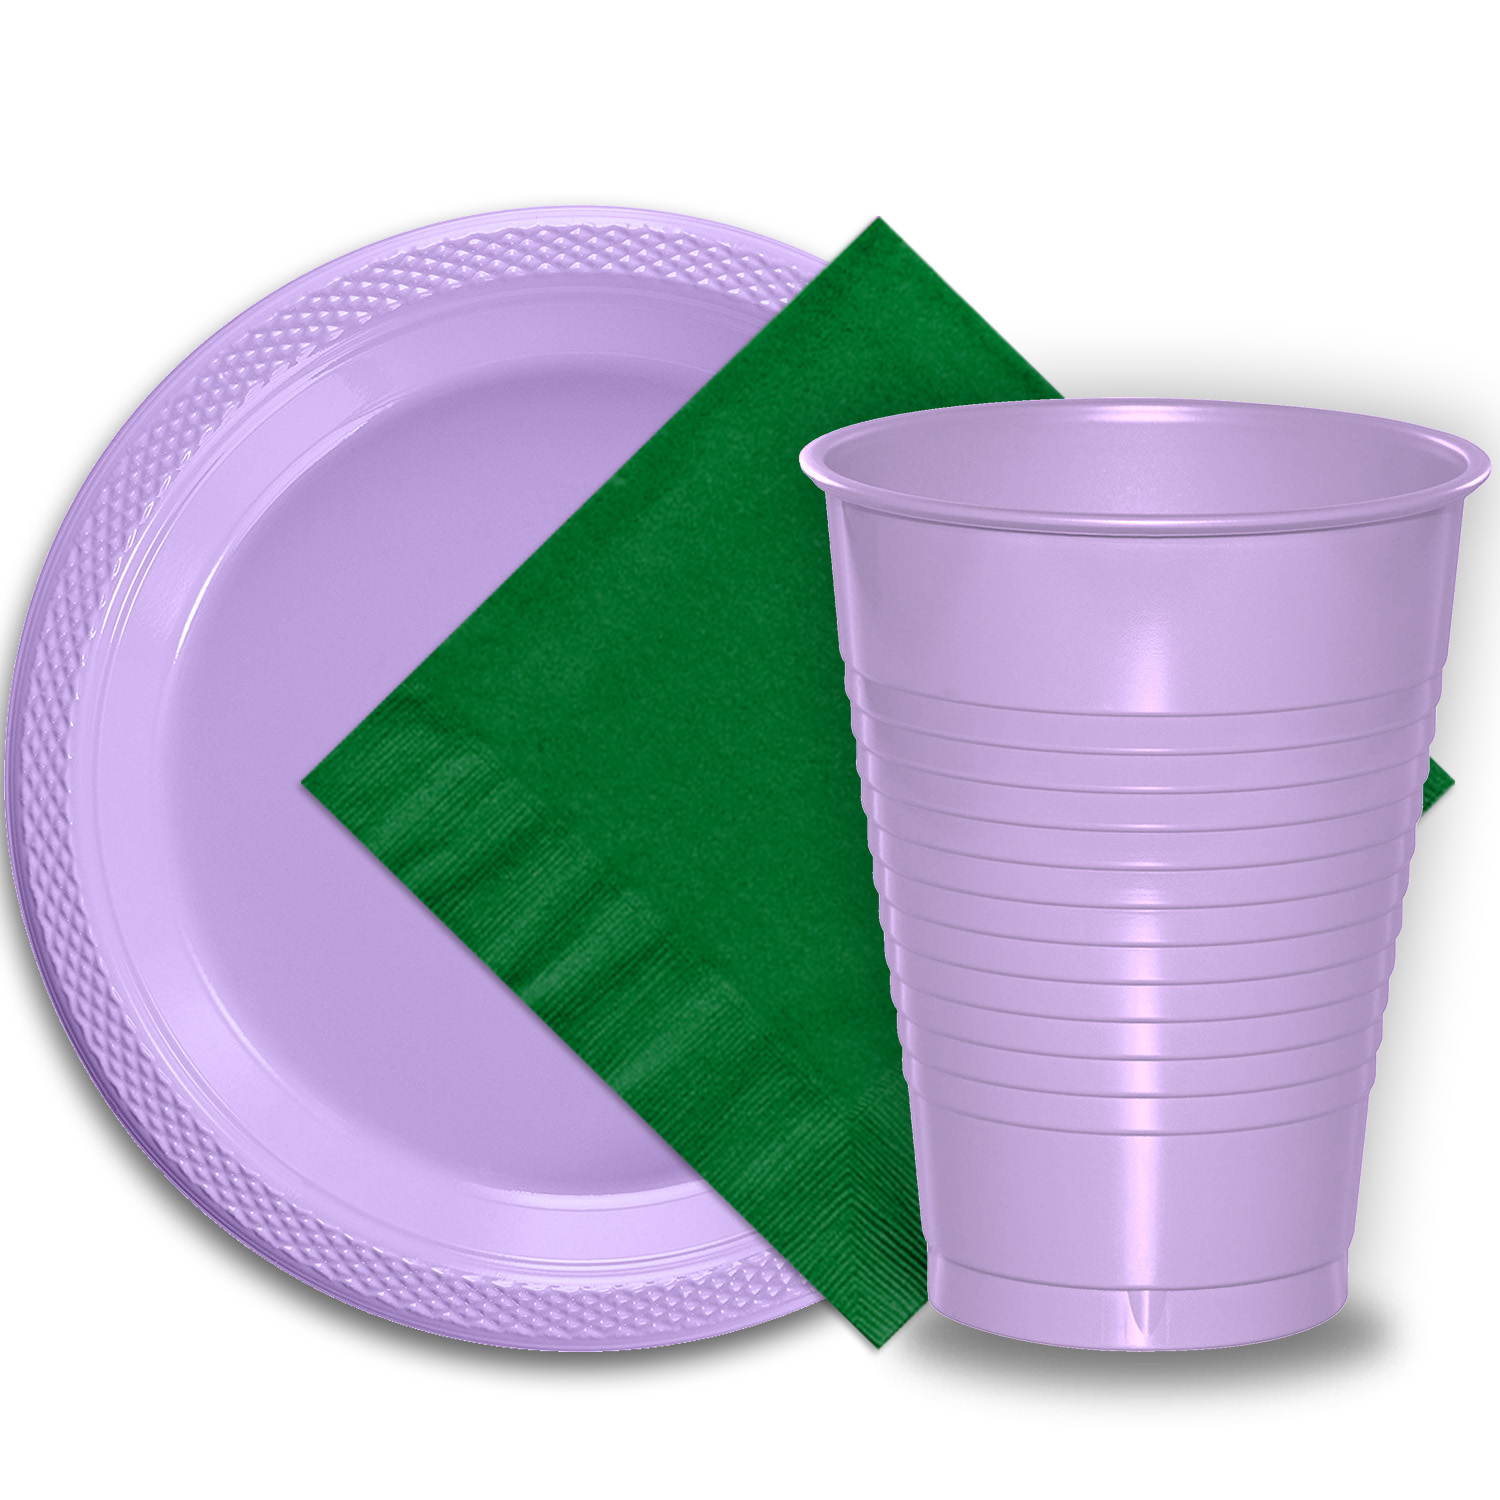 "50 Lavender Plastic Plates (9""), 50 Lavender Plastic Cups (12 oz.), and 50 Emerald Green Paper Napkins, Dazzelling Colored Disposable Party Supplies Tableware Set for Fifty Guests."